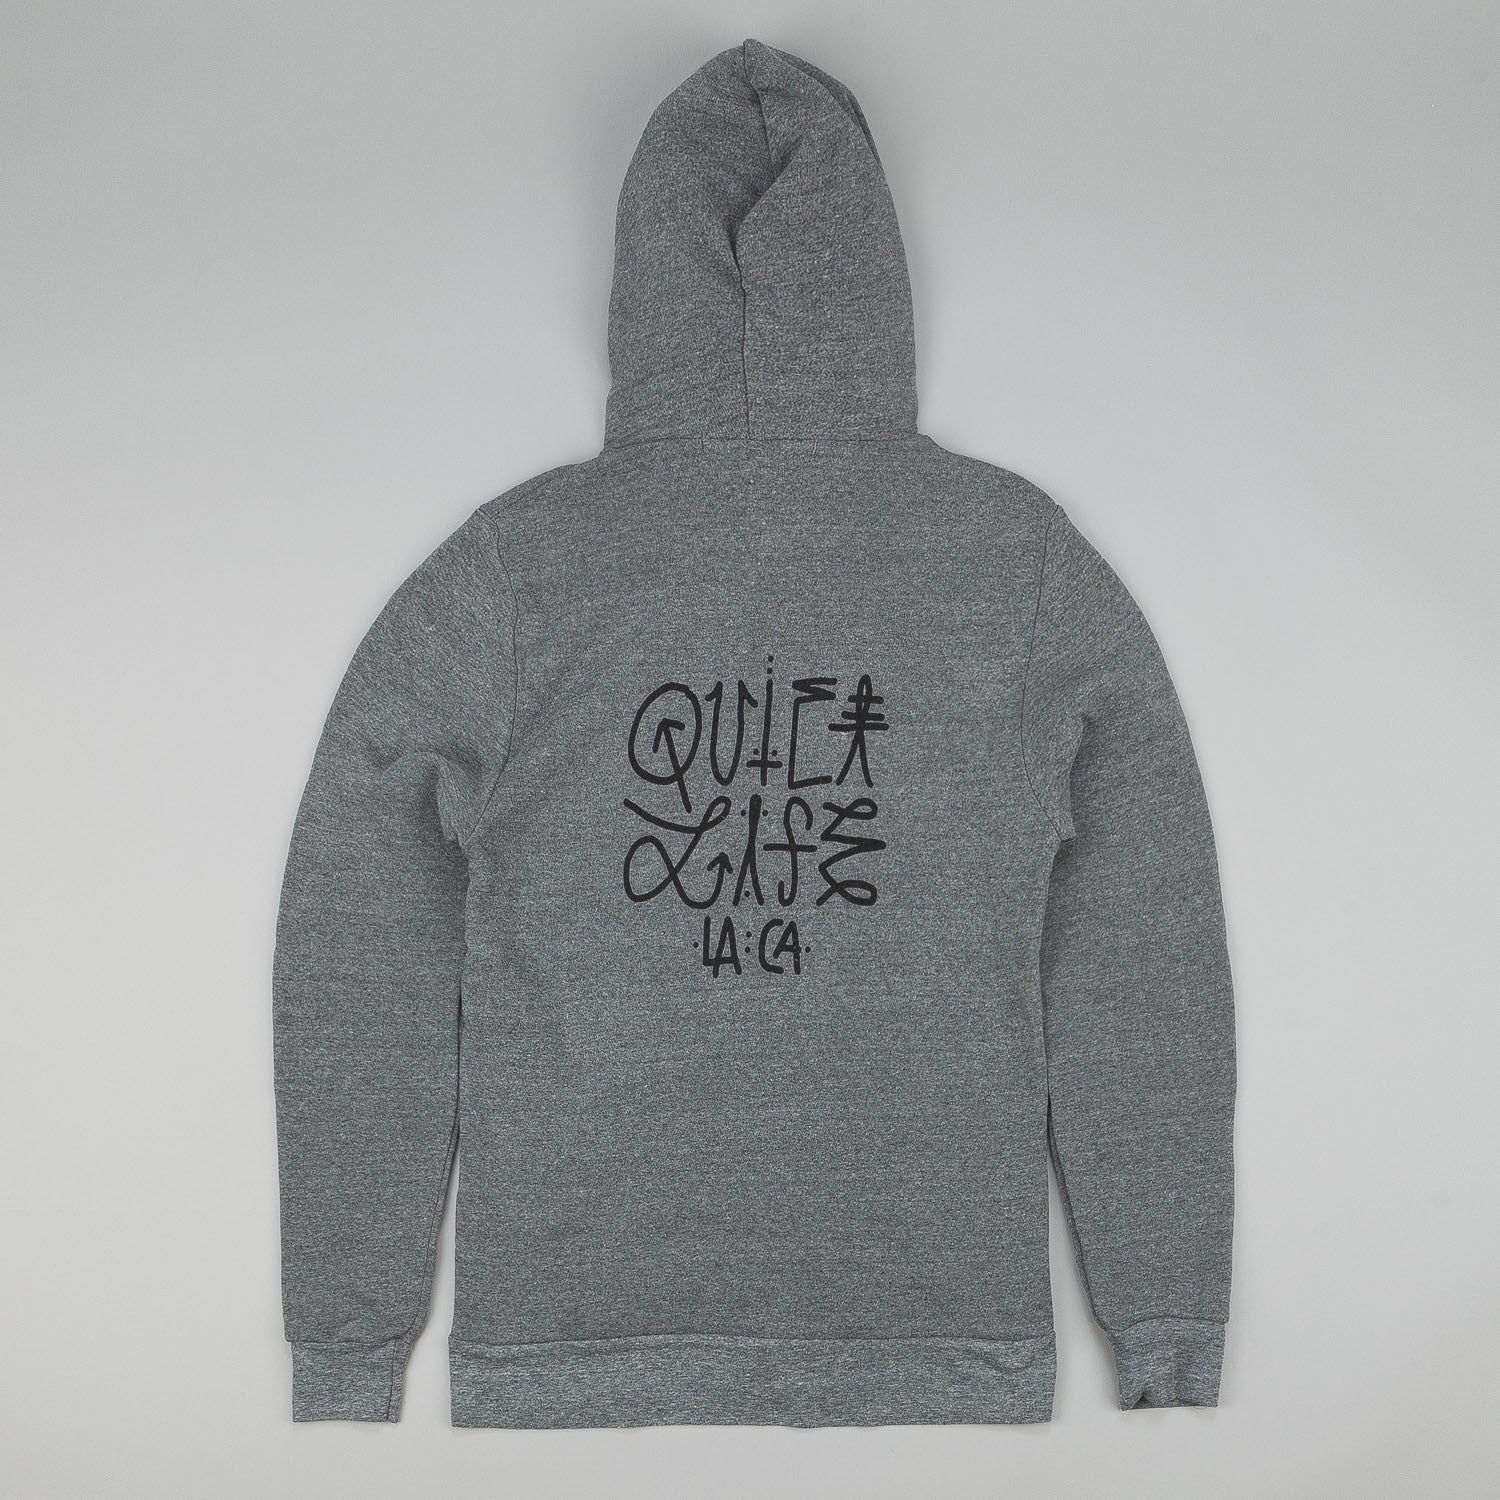 The Quiet Life Quiet Hudson Zip Up Hooded Sweatshirt - Grey